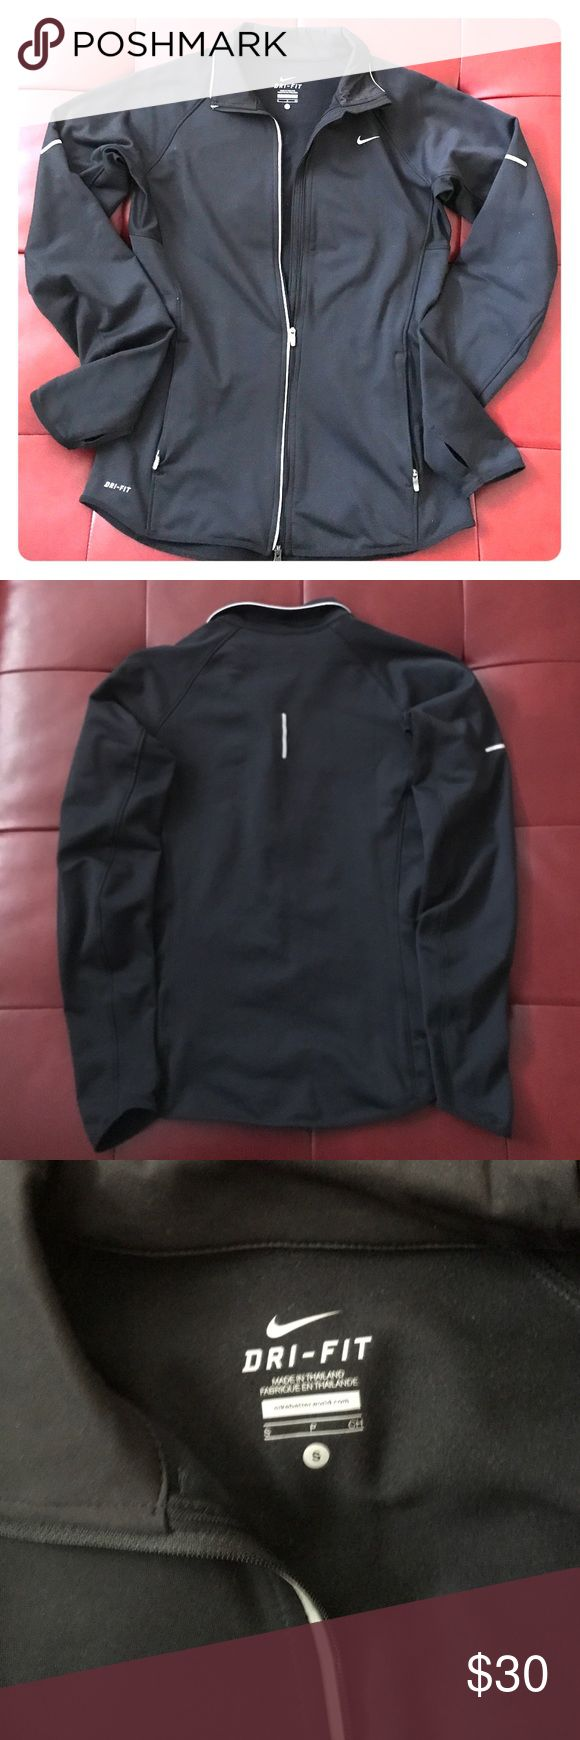 Women's Nike dri-fit jacket Women's Nike dri-fit jacket size small. Black. Only worn a couple of times. In great condition! Nike Jackets & Coats